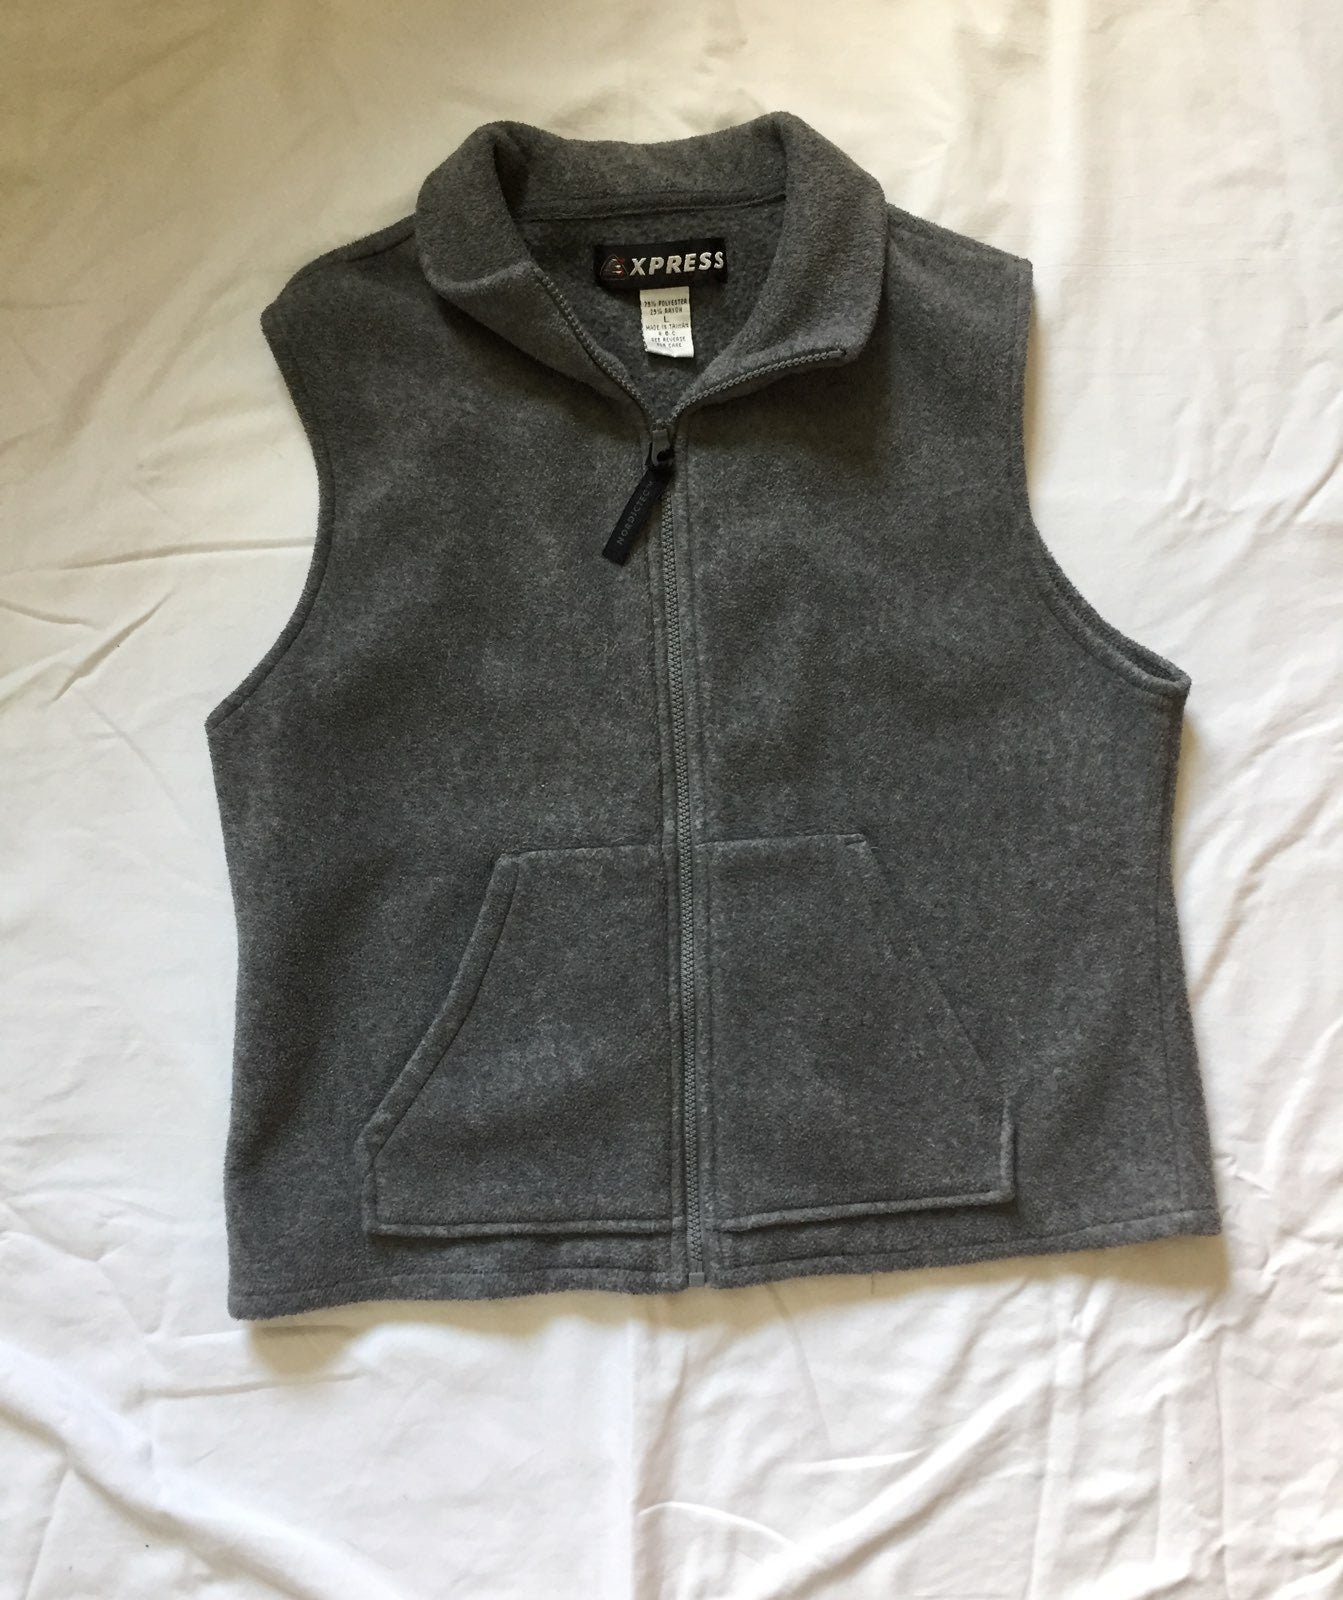 Express Nordictec jacket vest